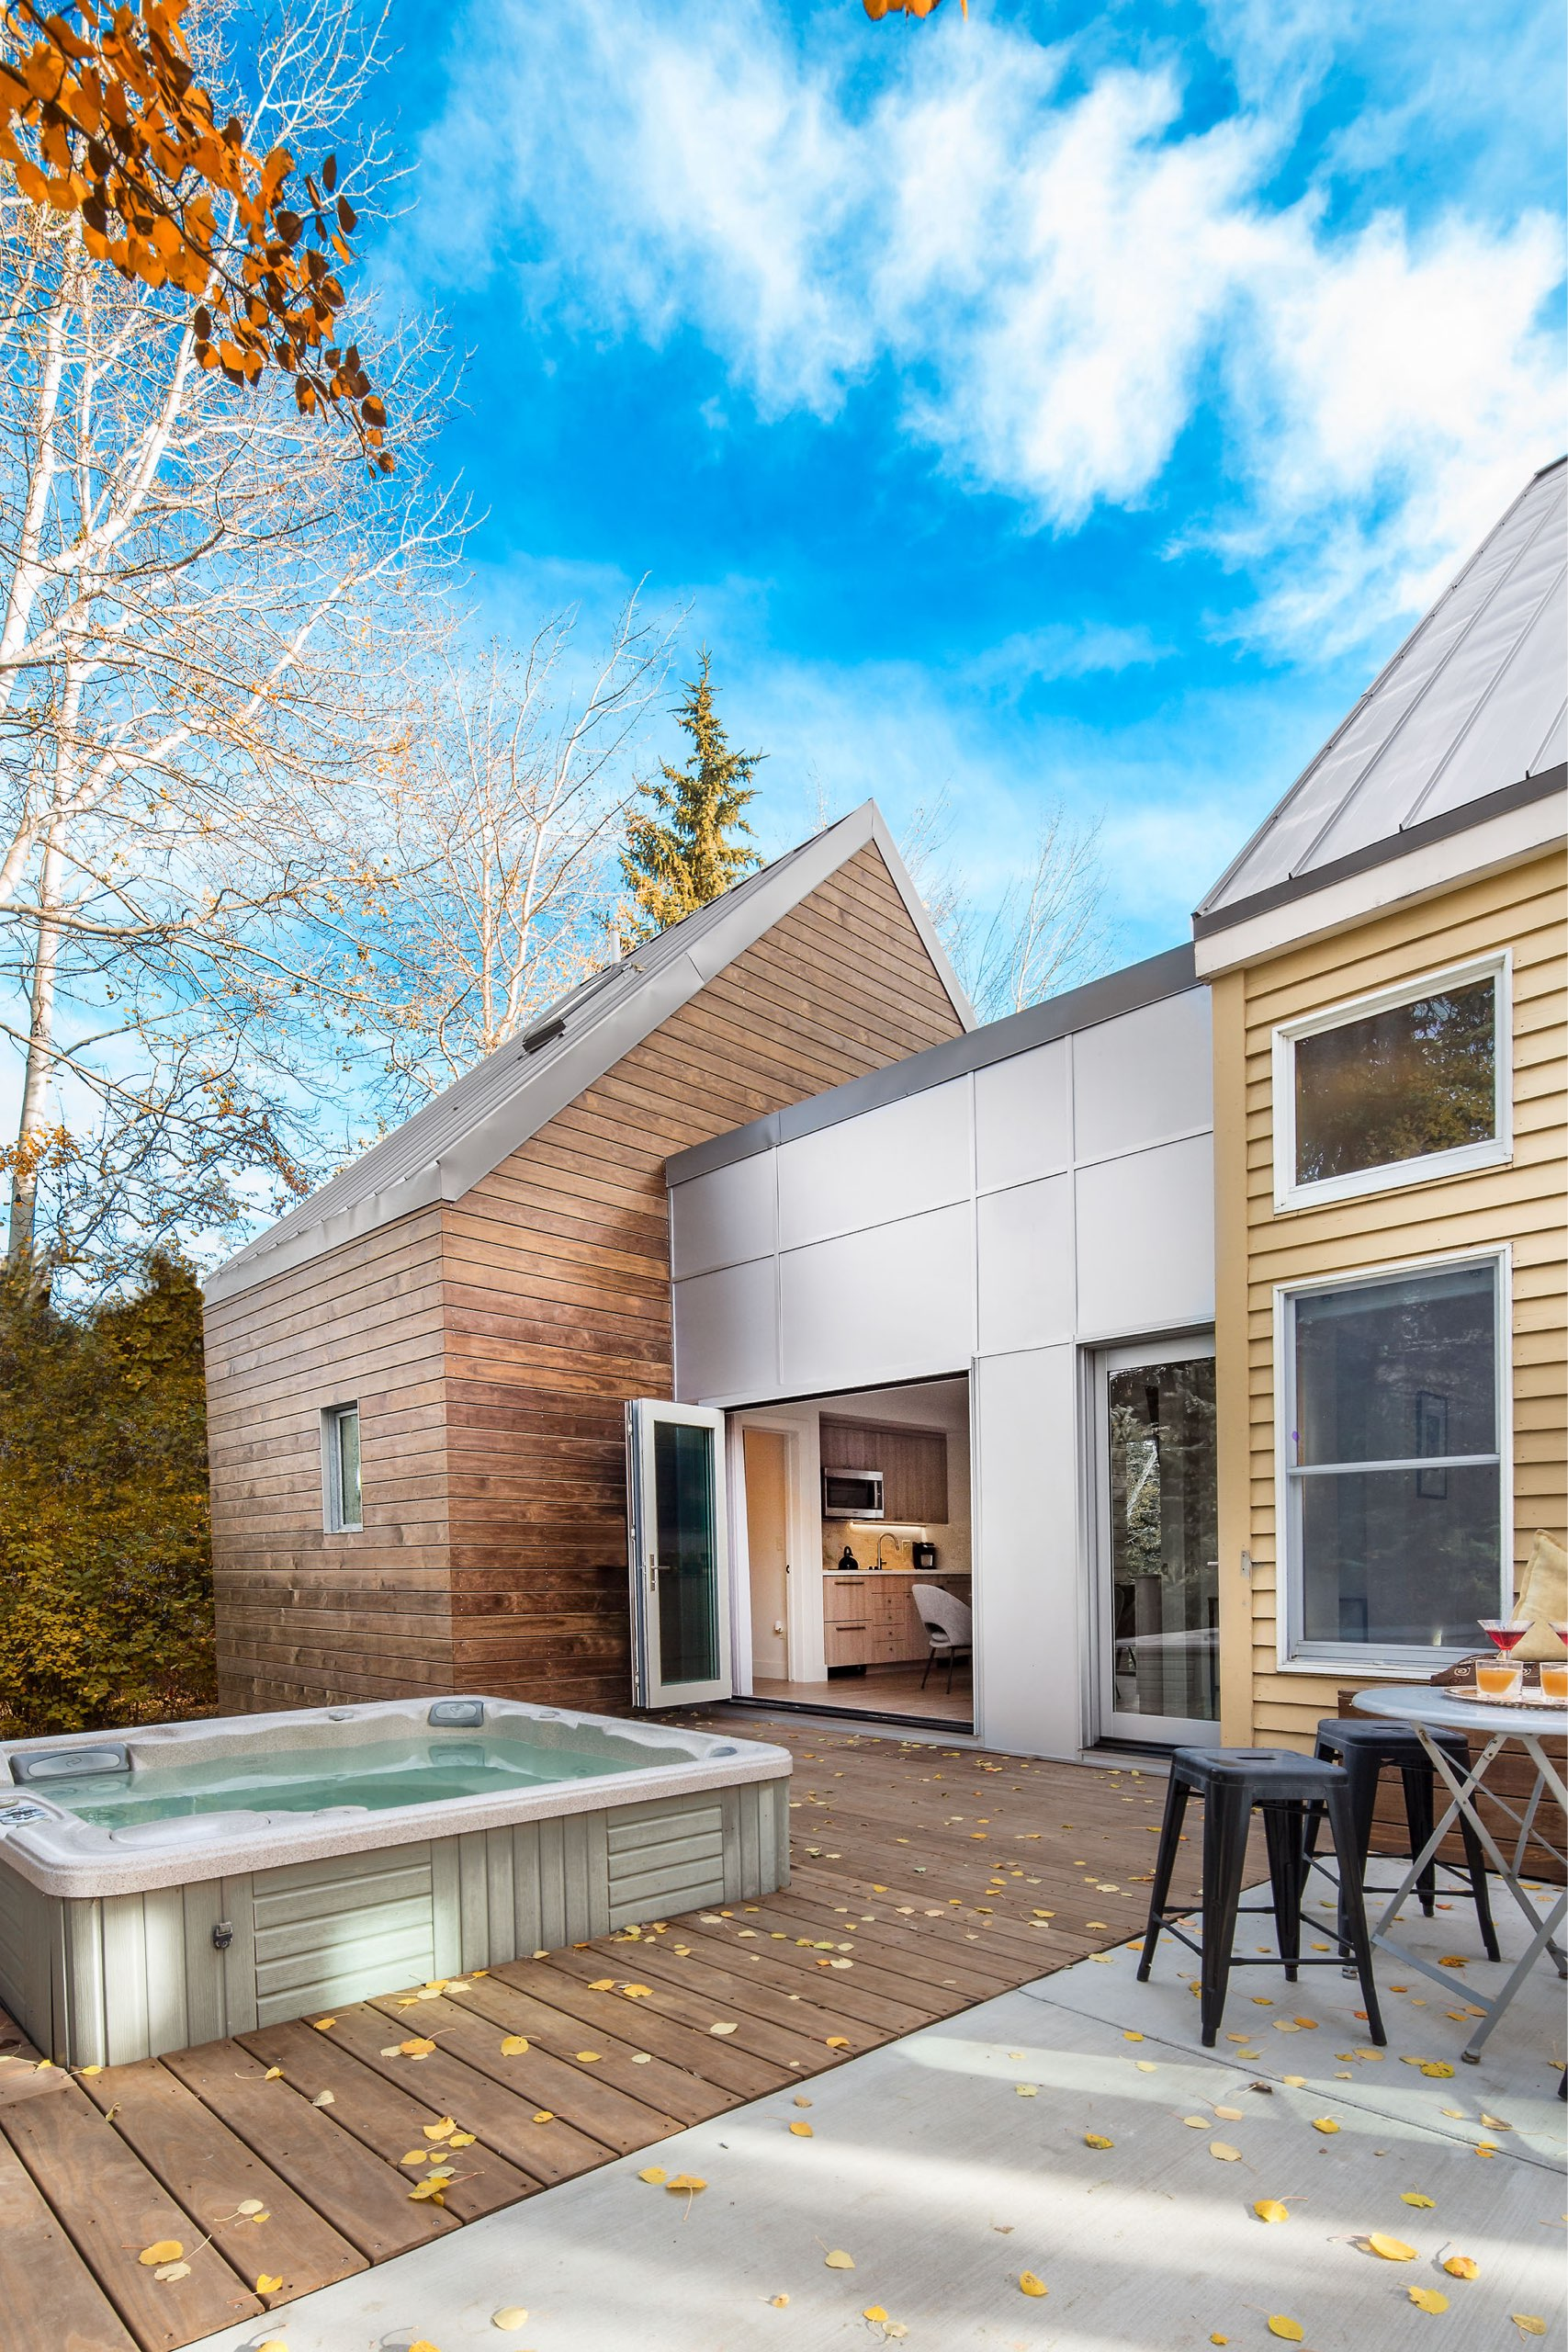 Patio and hot tub at the Granny Pod in Park City, Utah, architectural design by Elliott Workgroup